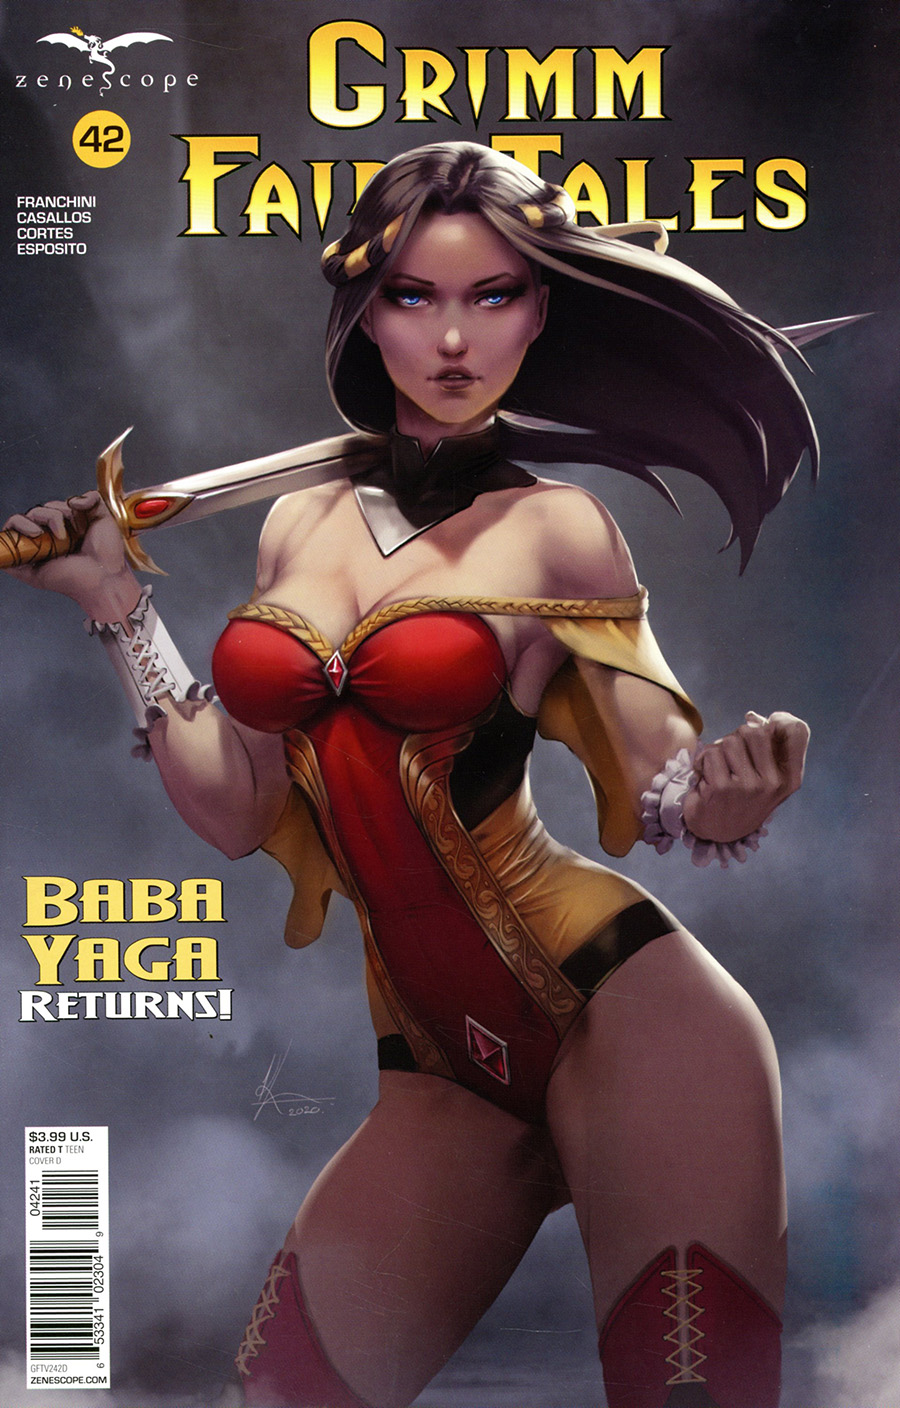 Grimm Fairy Tales Vol 2 #42 Cover D Karl Liversidge